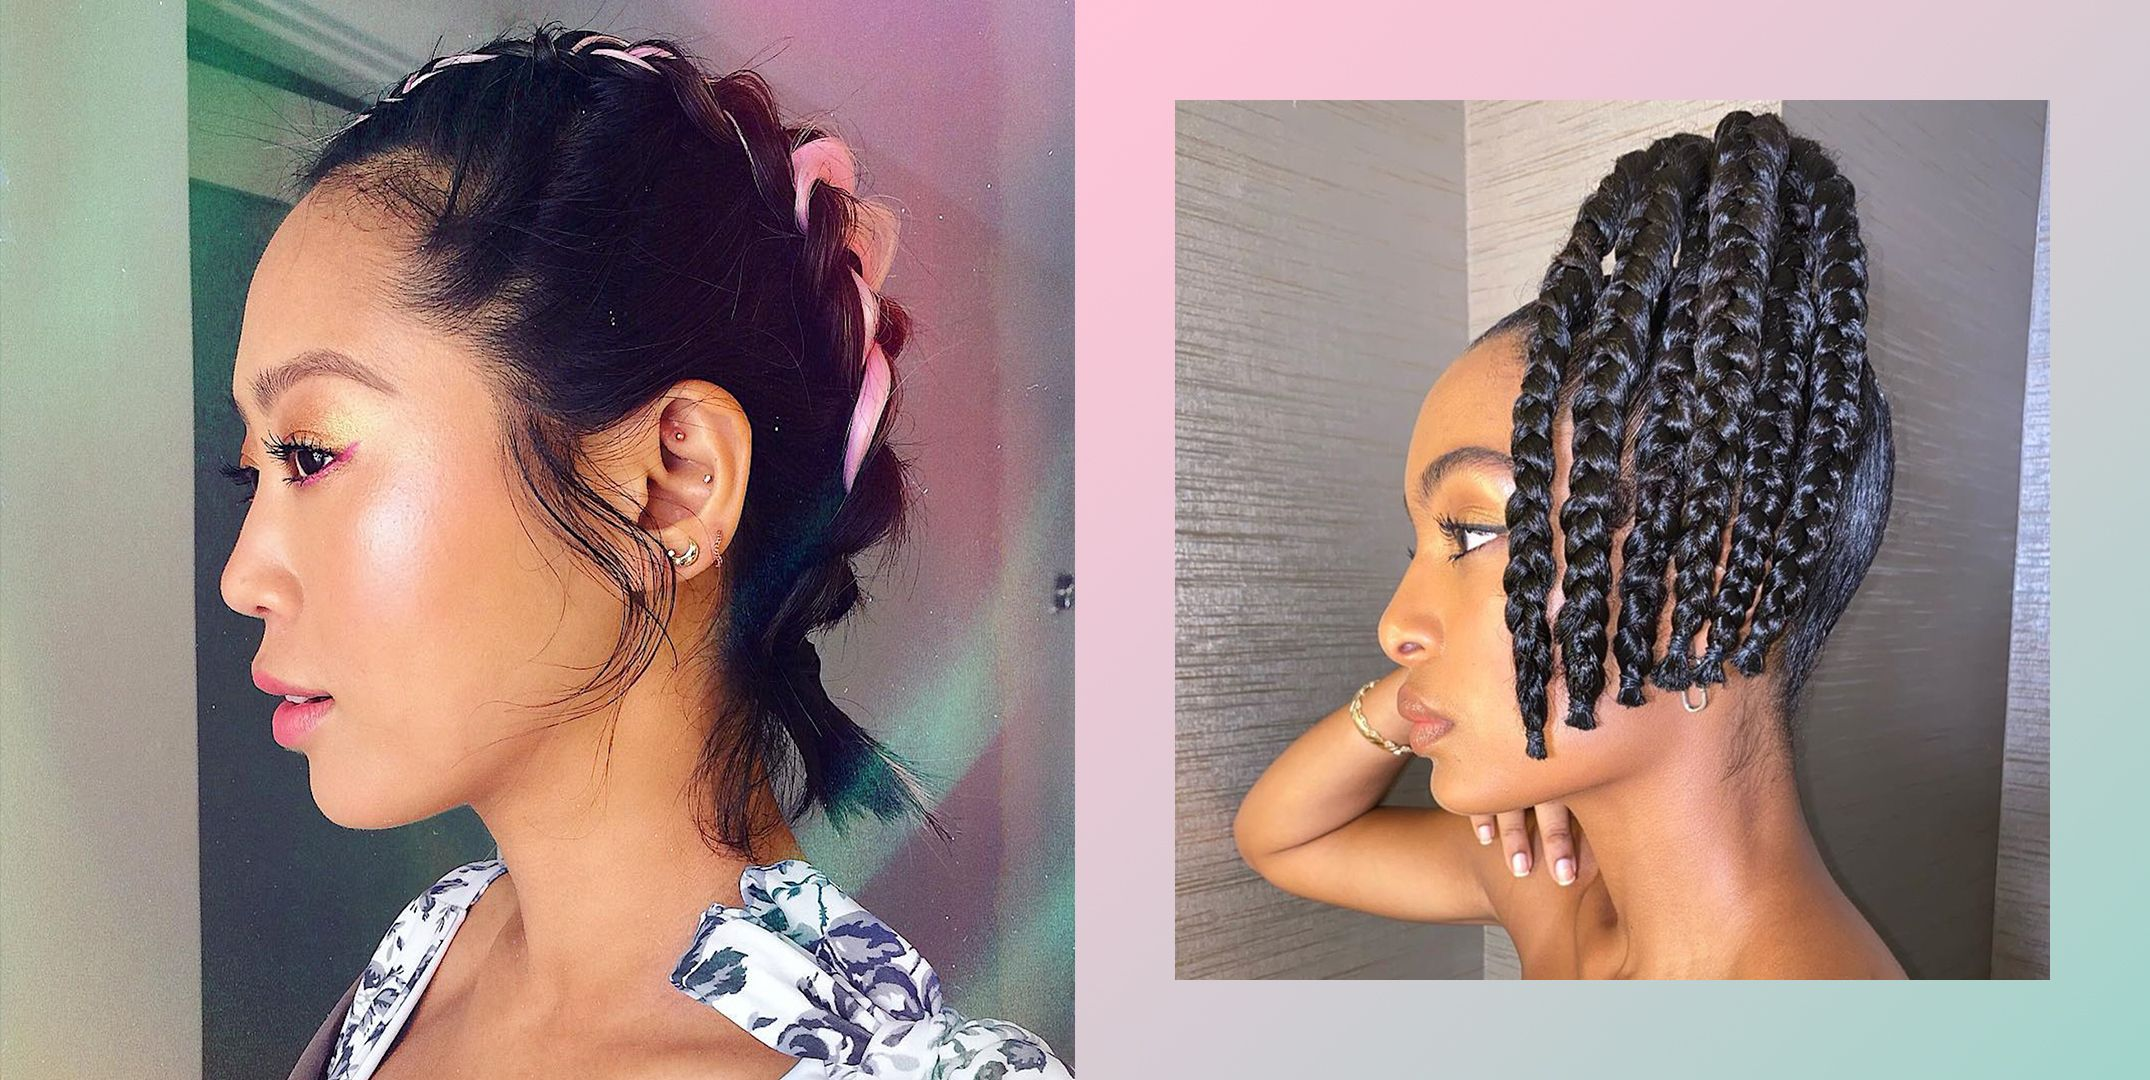 23 Best Braided Hairstyles And Ideas On How To Braid In 2020